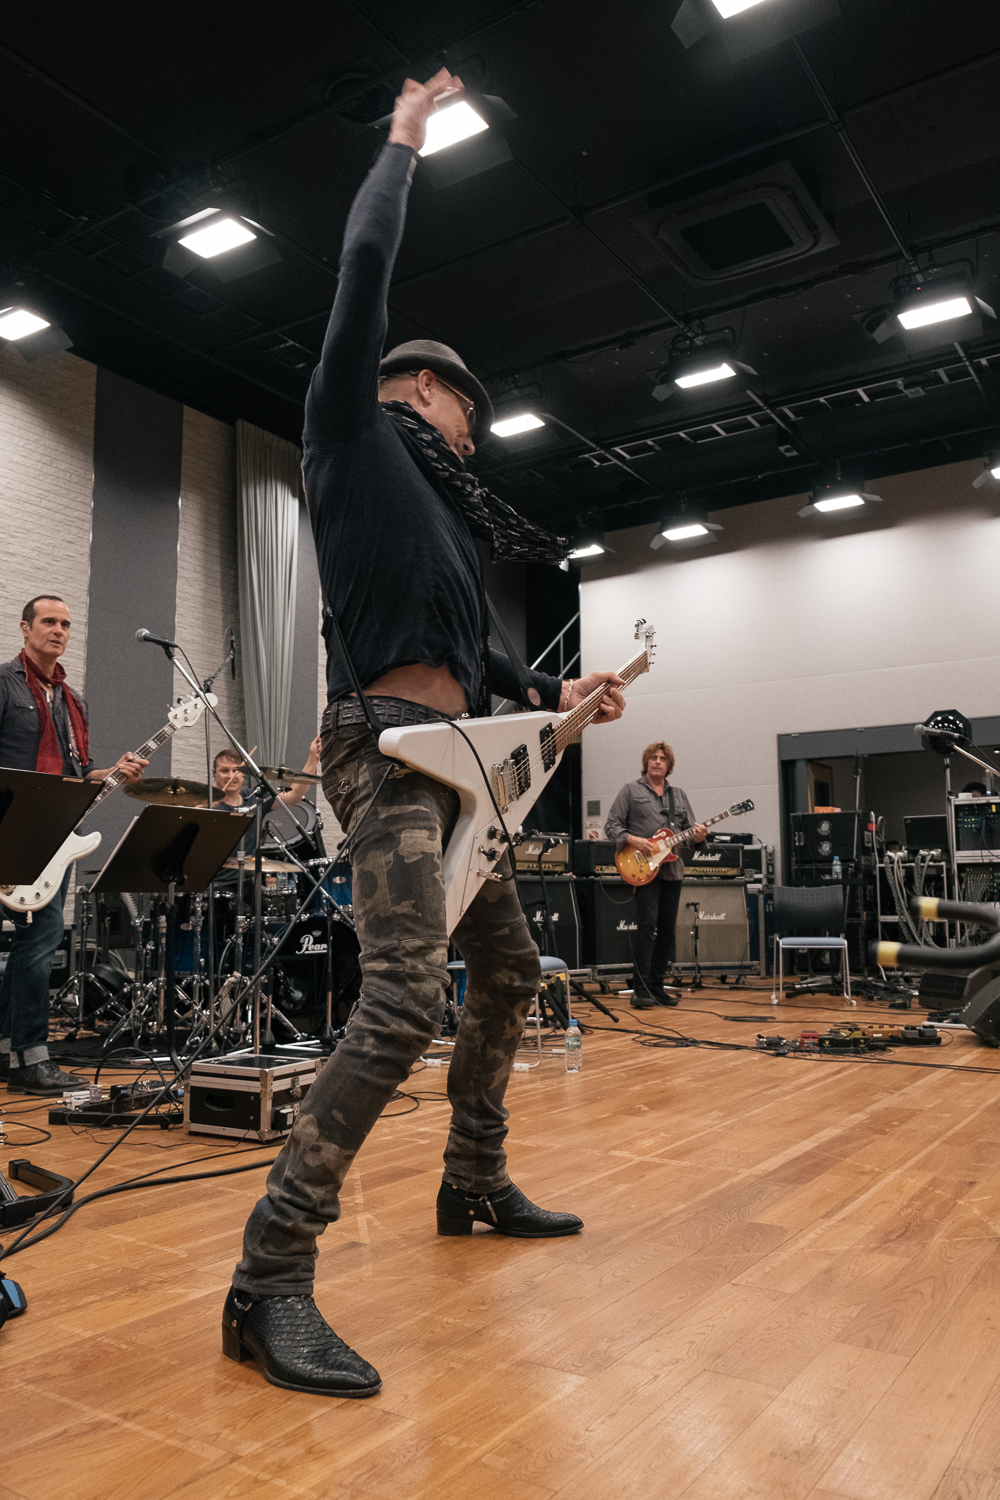 Rudolf Schenker, 'windmilling' over 30 times! Rehearsals for the Japan Classic Rock Awards